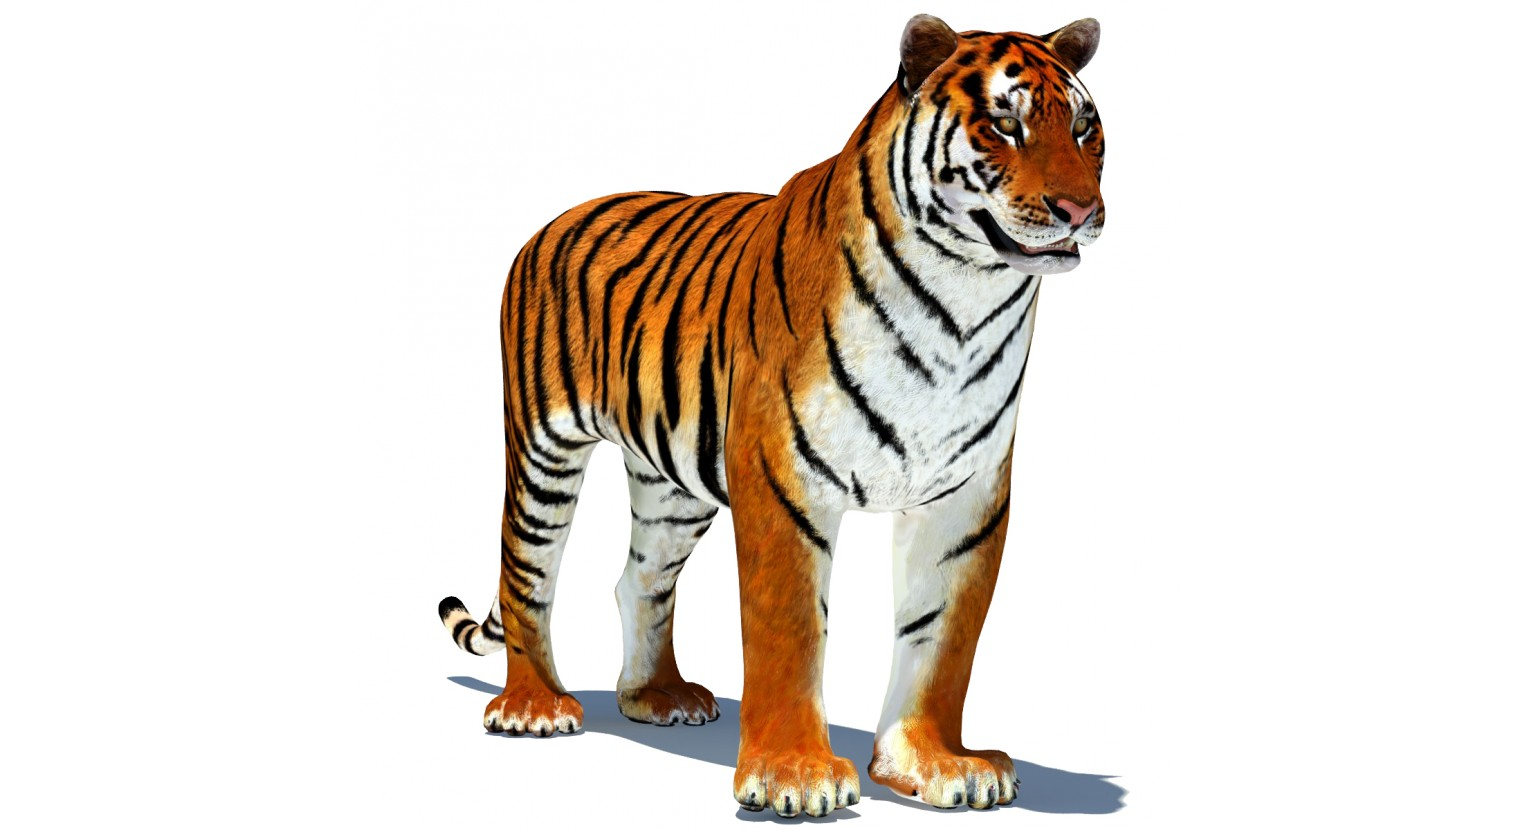 1536x830 - Animated Tiger 5